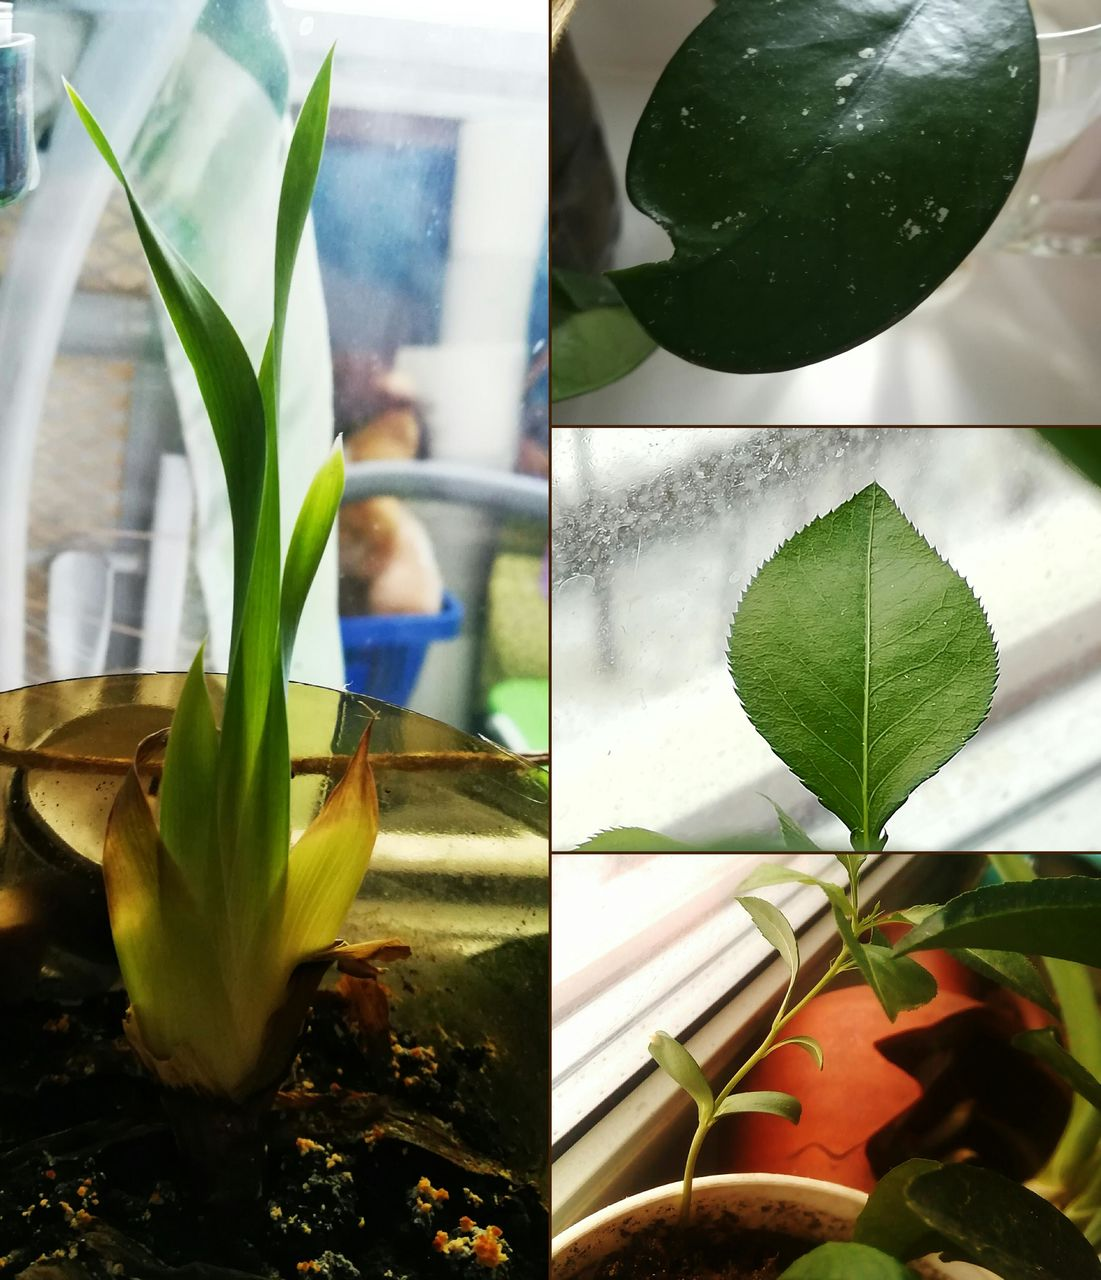 leaf, collage, growth, plant, close-up, no people, green color, freshness, beauty in nature, nature, indoors, day, water, fragility, flower